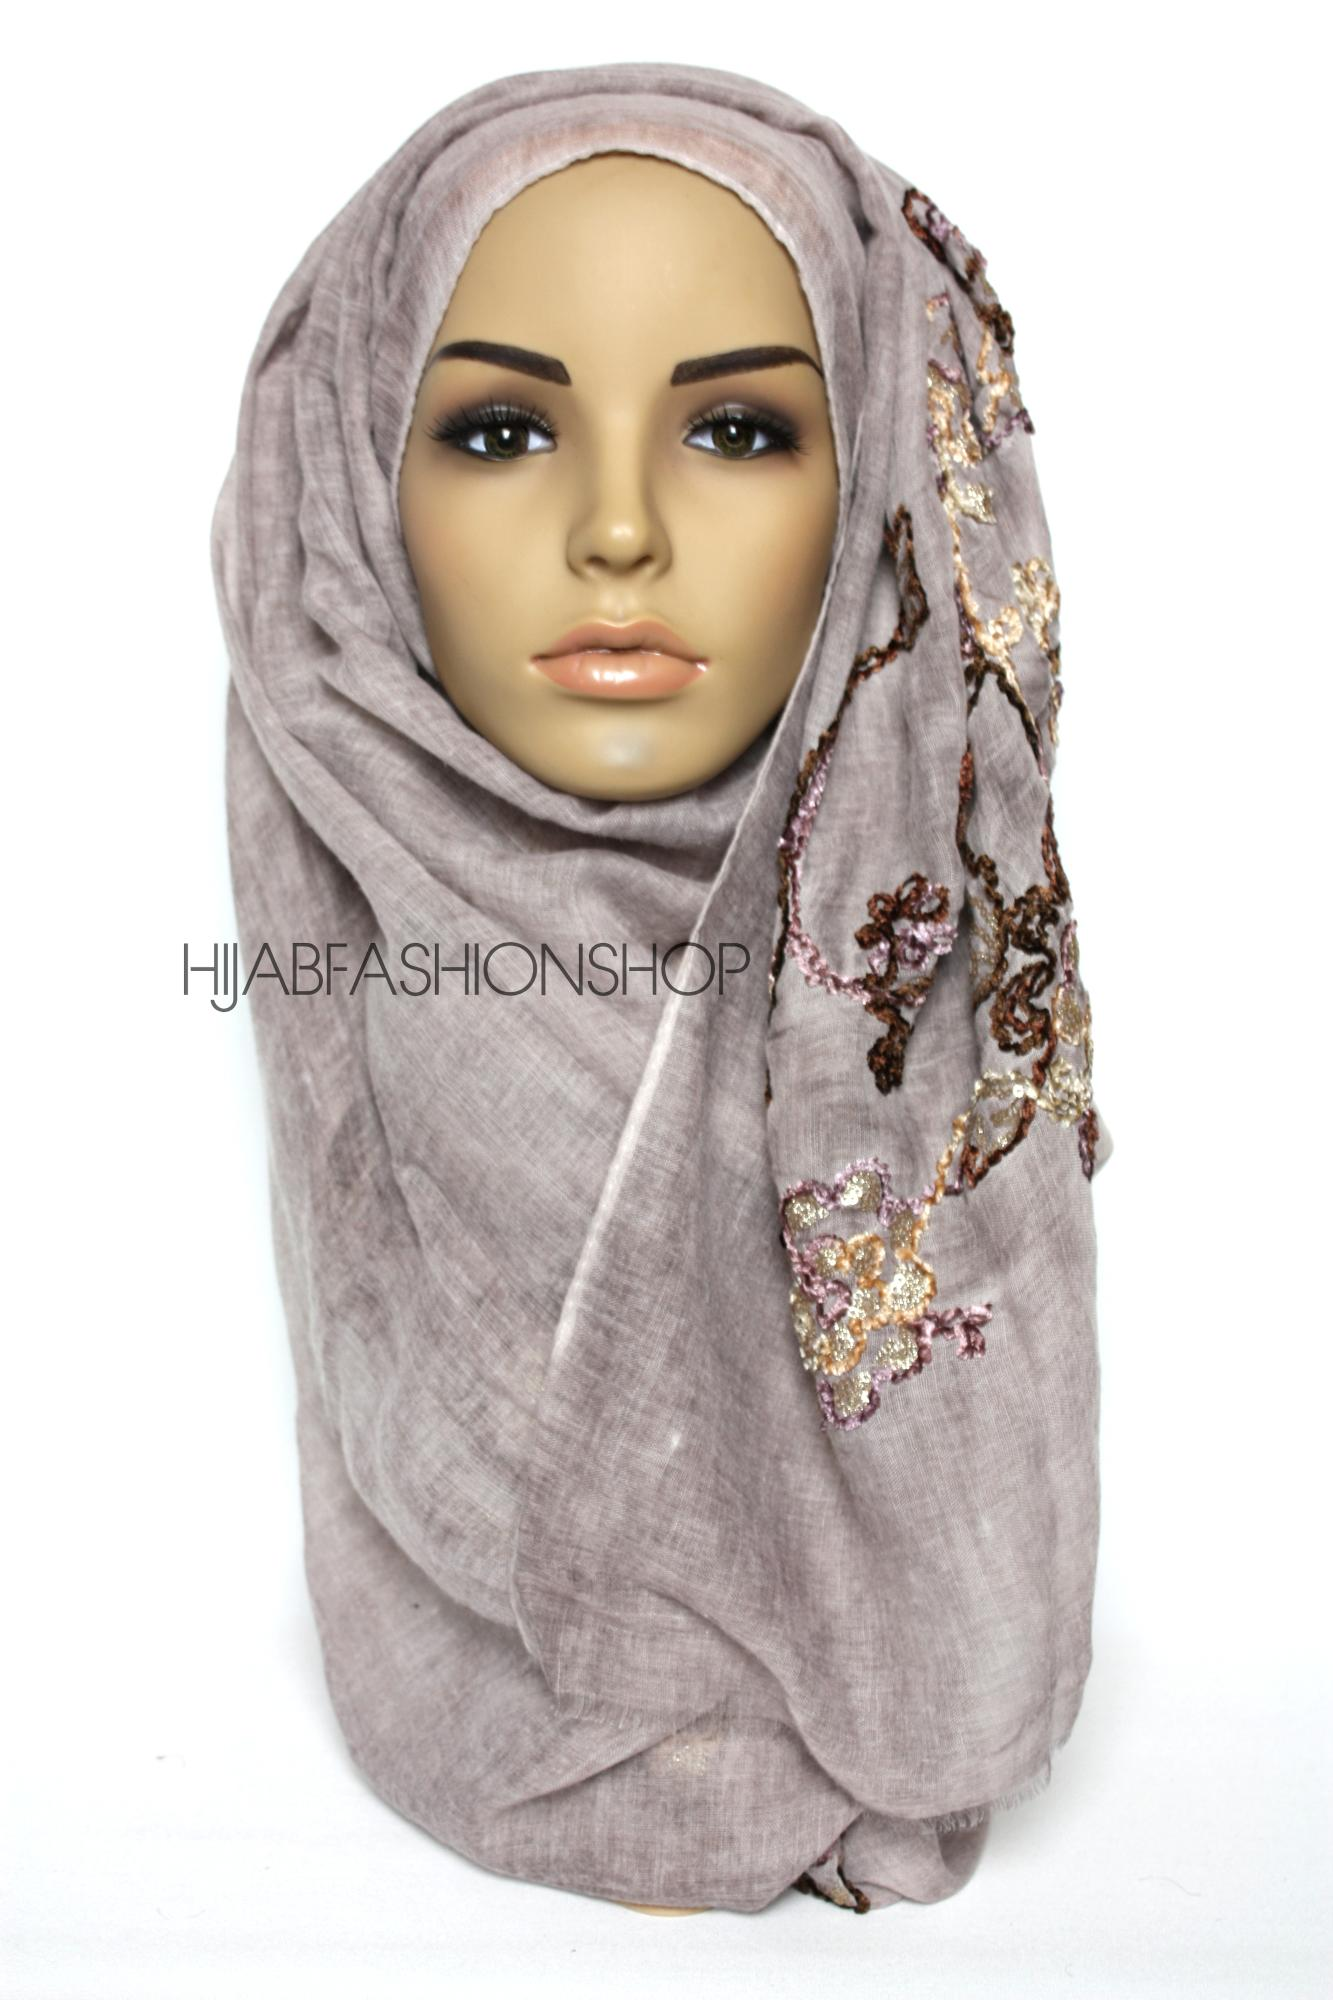 dusky mauve linen look hijab with floral velvet embroidery and sequins